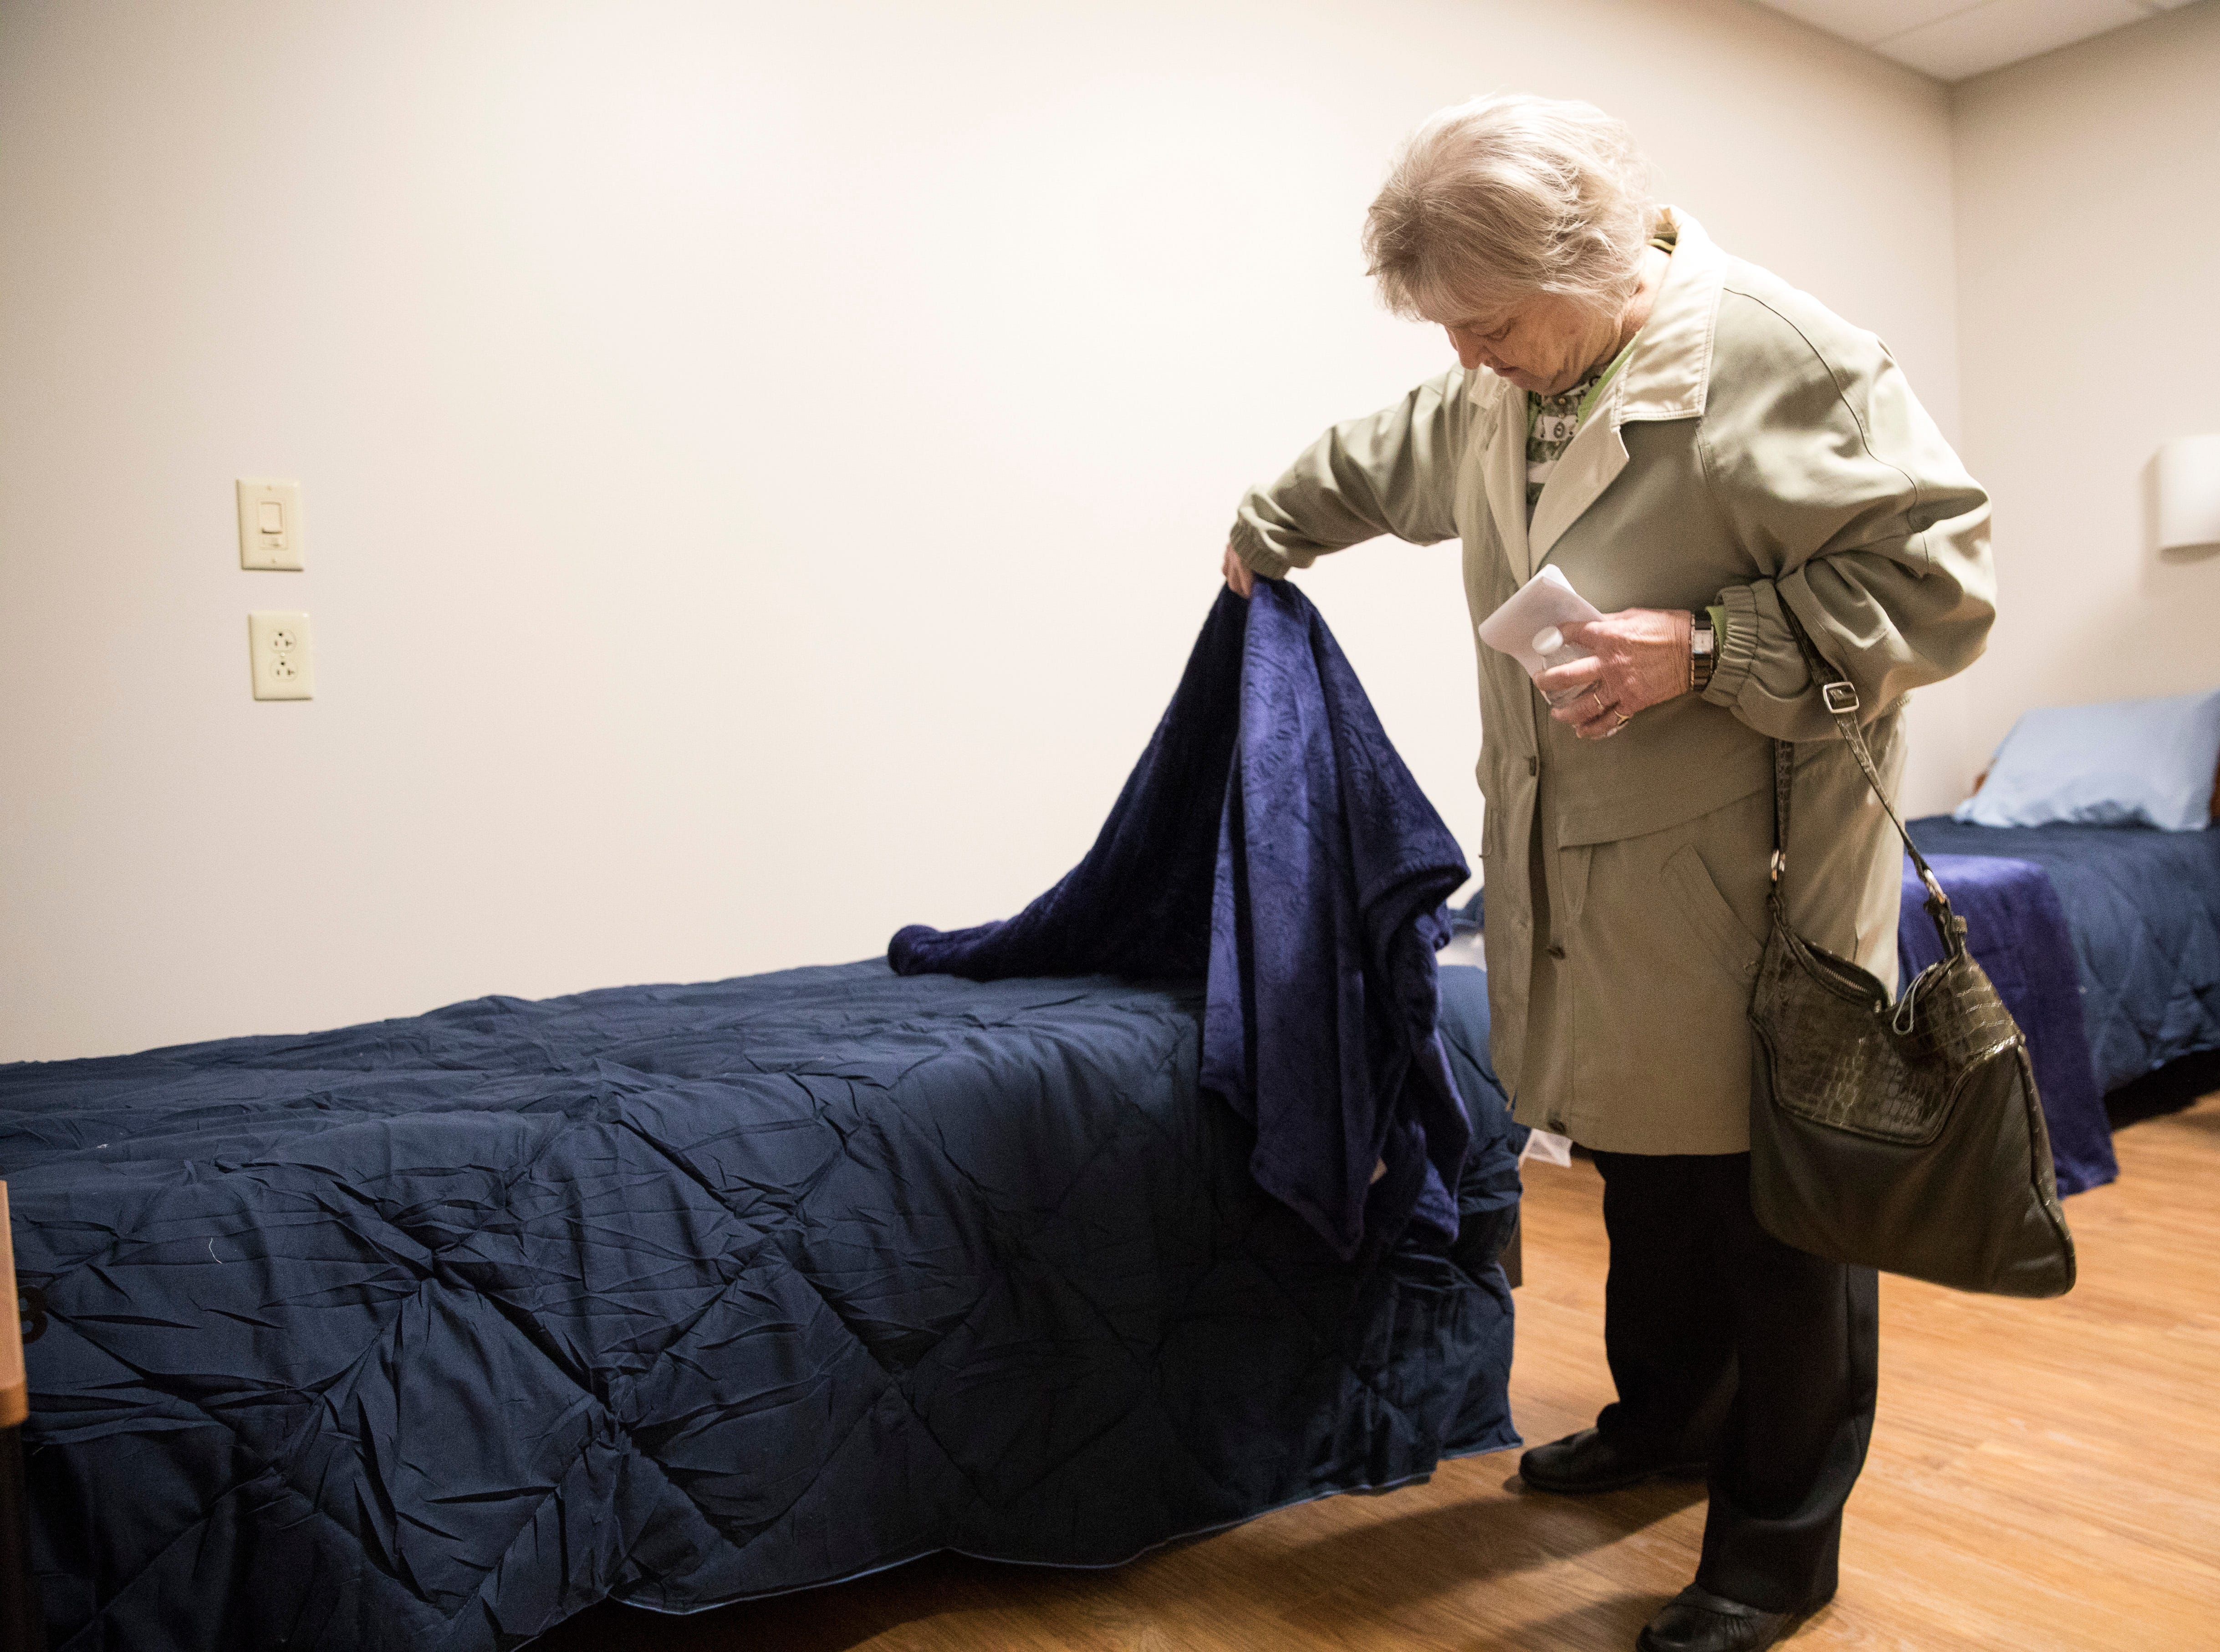 Scioto Paint Valley Mental Health Center board member Marsha Rulon looks at one of the 36 beds at a new residential alcohol and other drug treatment center for men on Feb. 5, 2019. The treatment center, located at 400 Chamber Drive, is named for Rulon who began volunteering with Scioto Paint Valley's crisis center in 1981 and is celebrating her 36th year on the board this year.